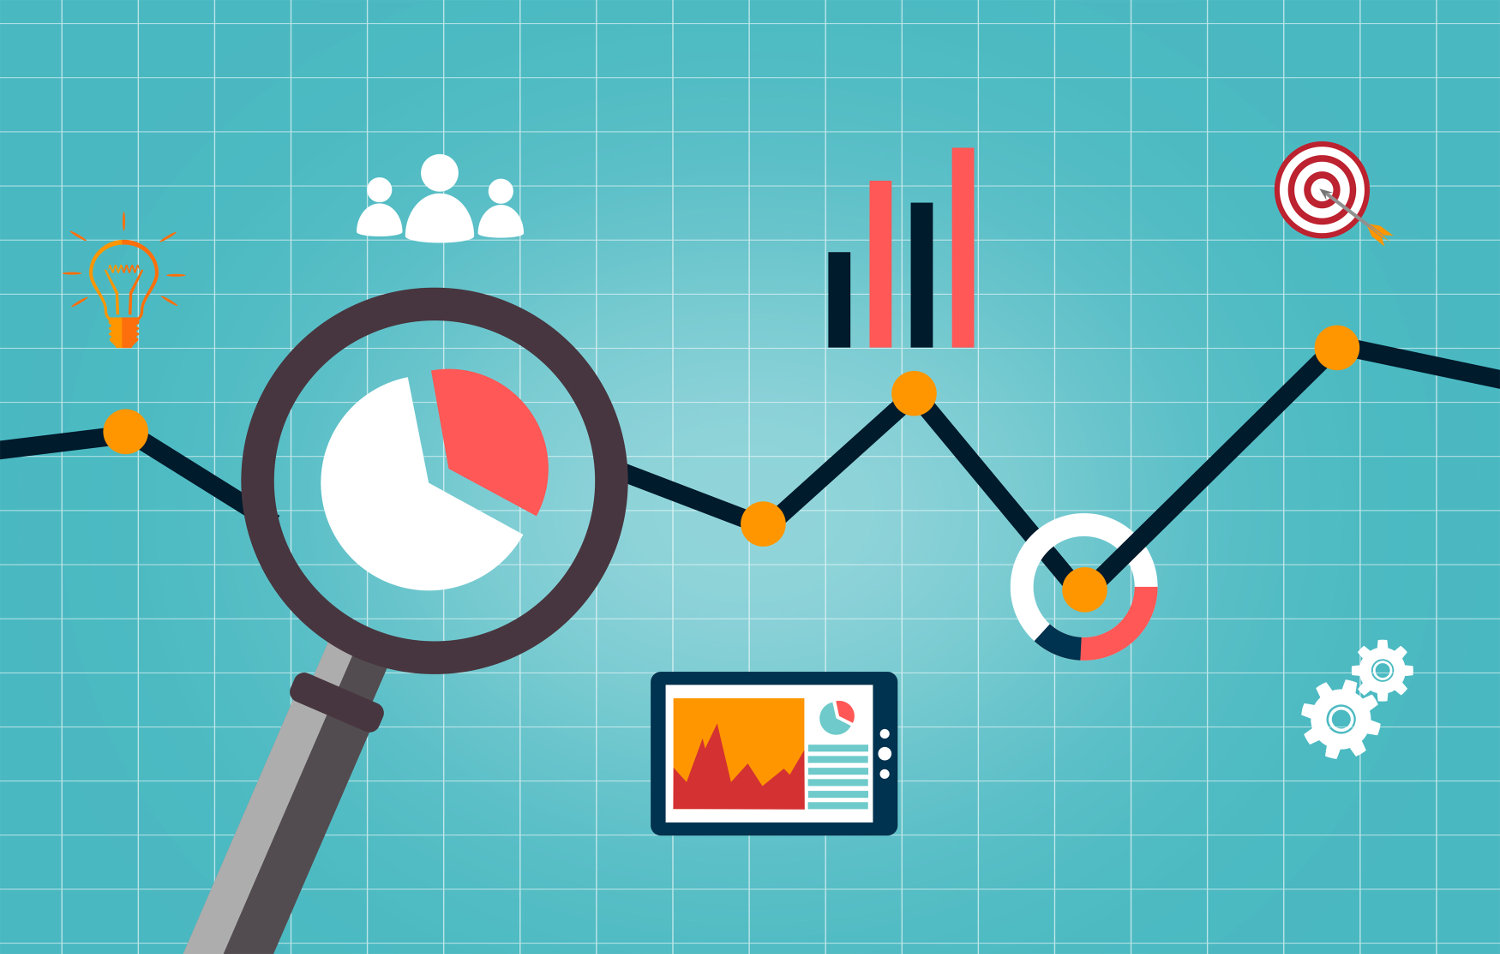 google business analysis See the latest trends, data and visualizations from google find out what's trending near you right now.